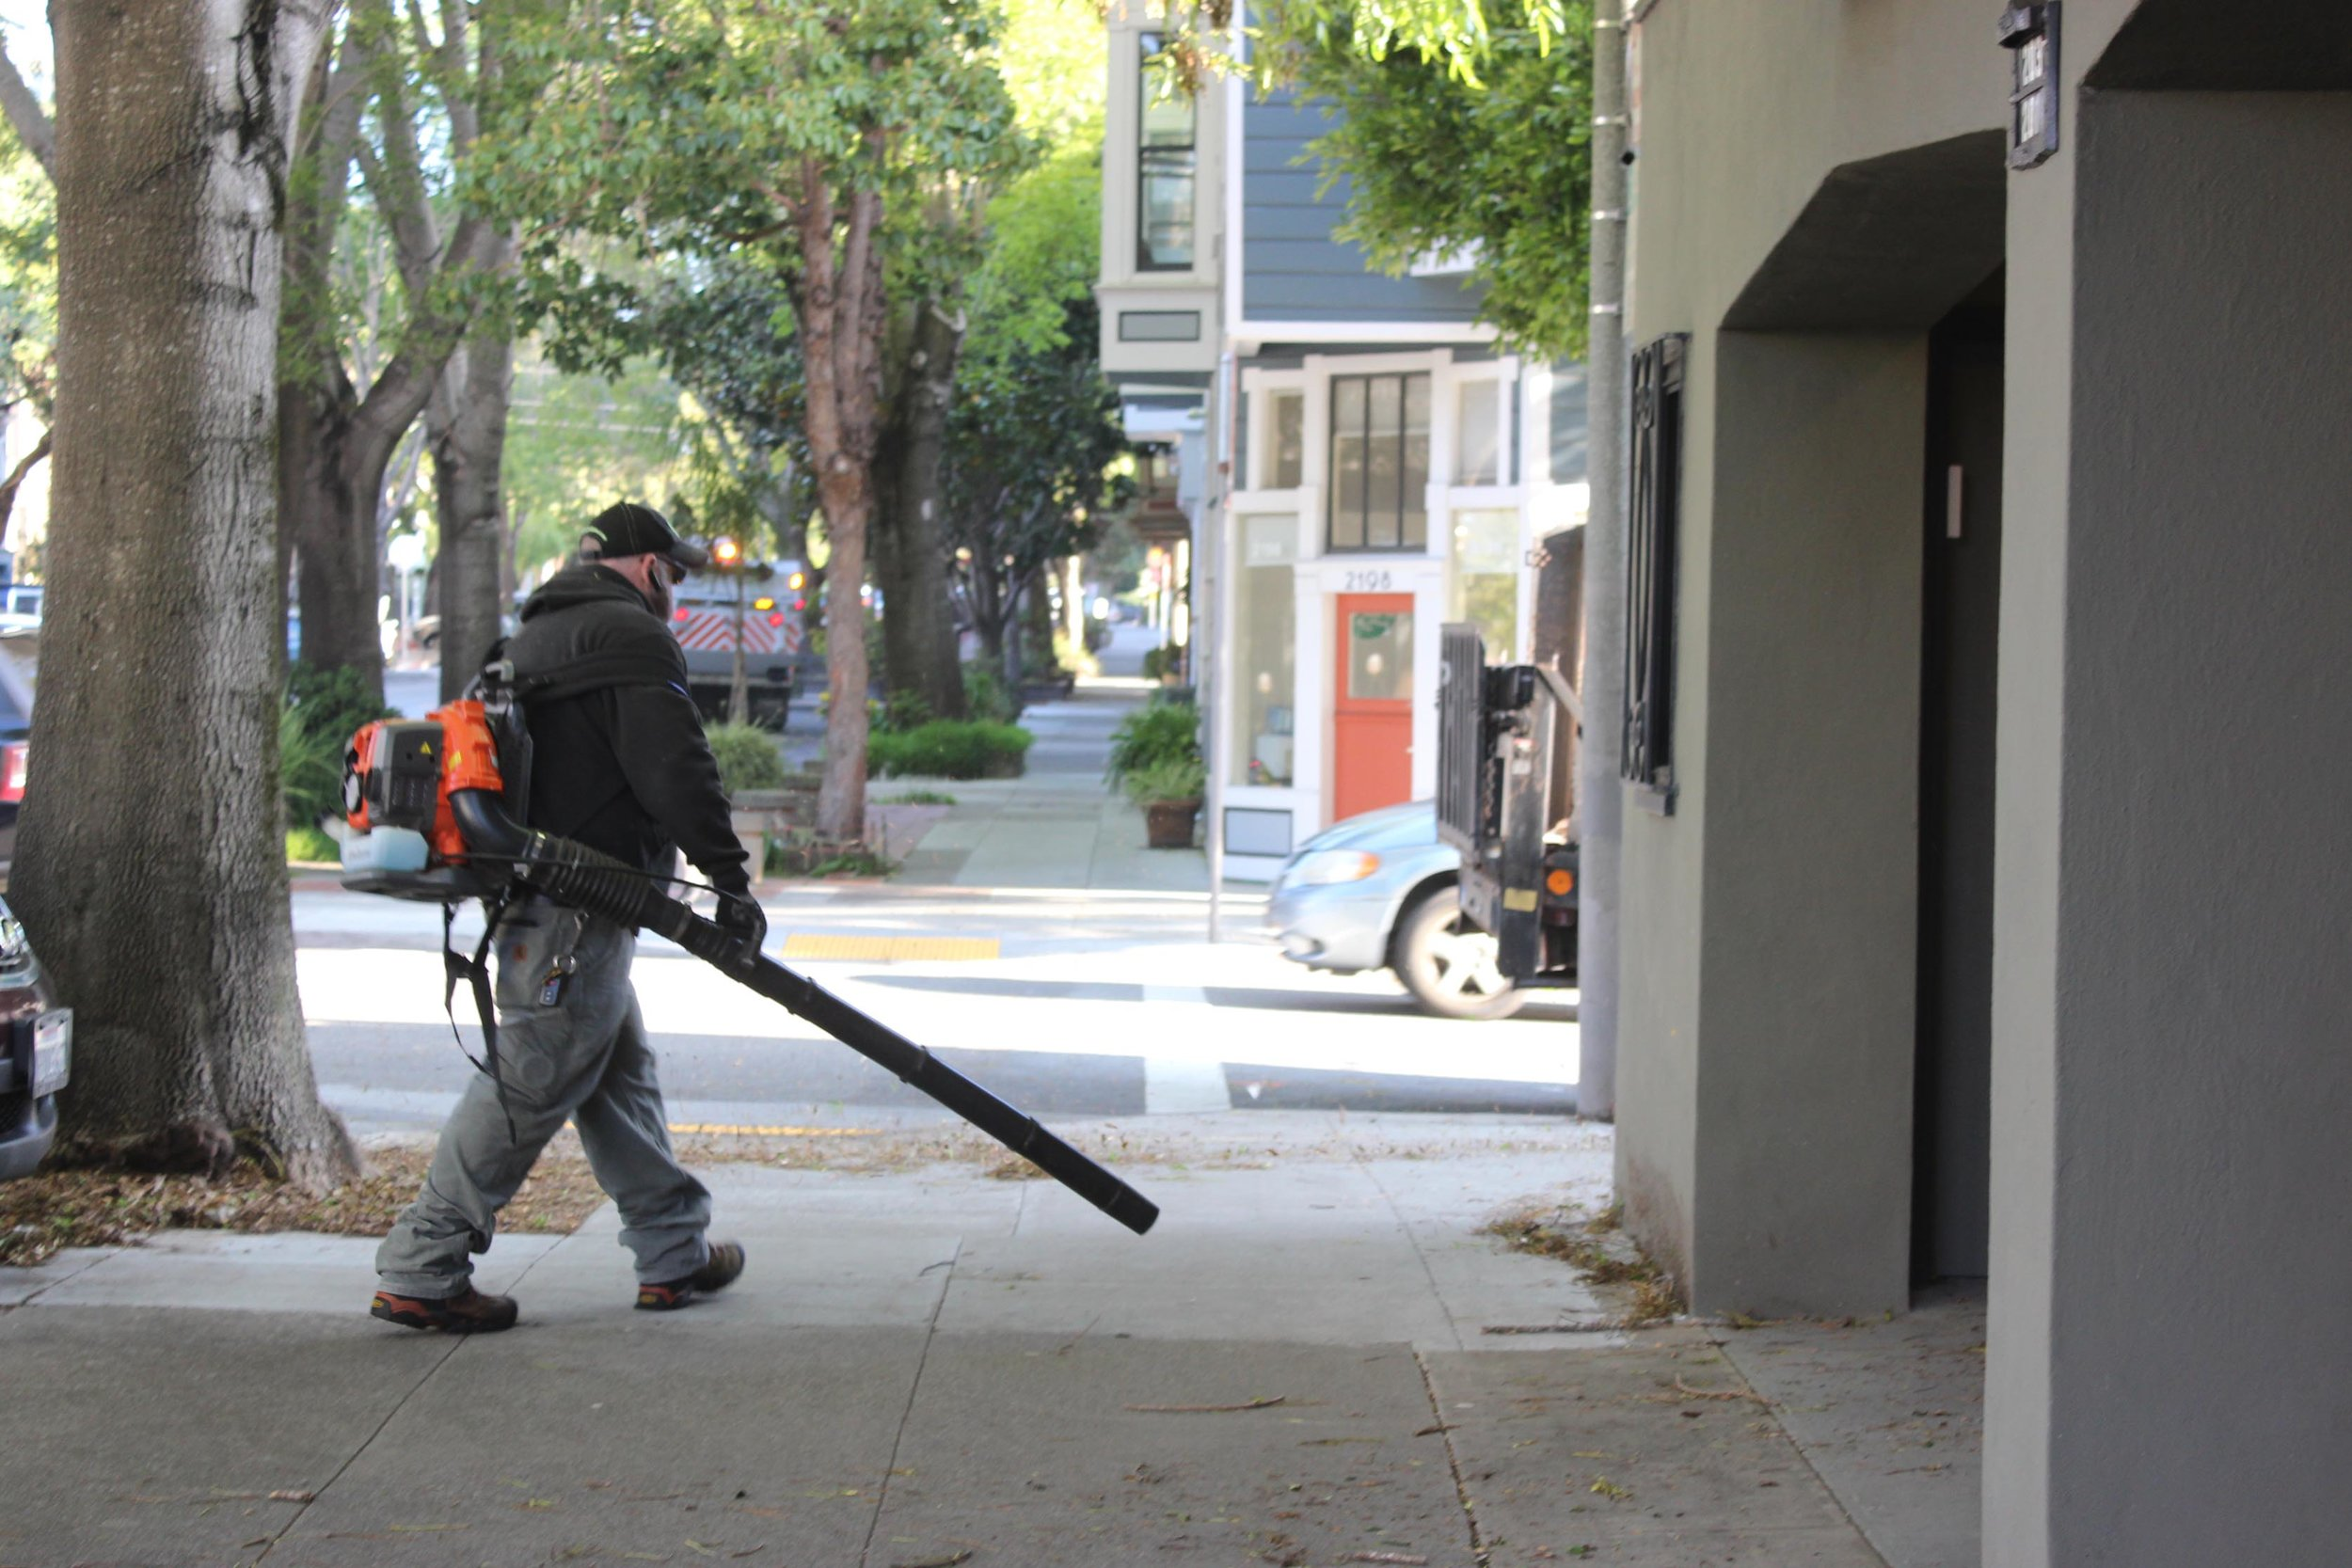 San Francisco's Duboce Triangle neighborhood is known for the street trees - the trees can create quite a mess so we volunteer a few minutes every week to cleaning the sidewalk in advance of the street sweeper